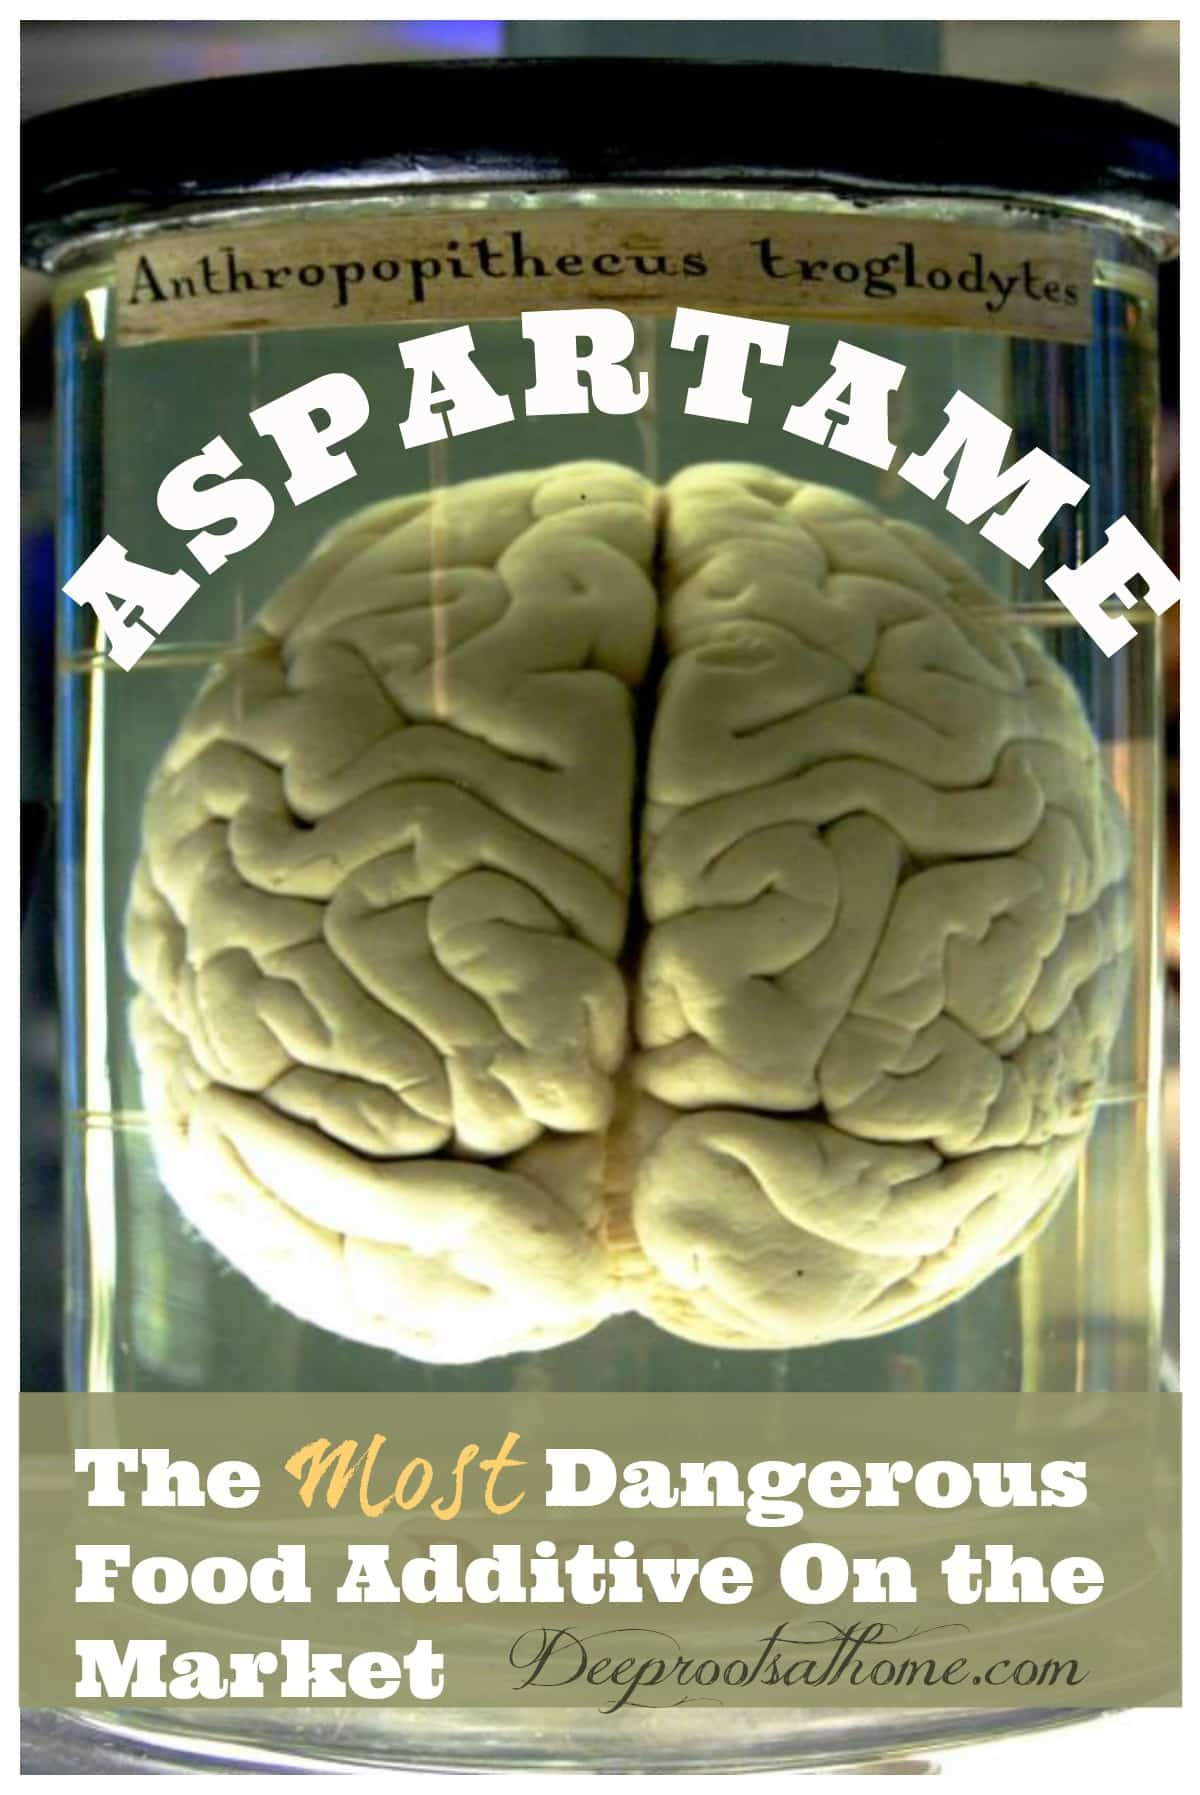 Aspartame: The Most Dangerous Food Additive On the Market, Aspartame affects and damages the brain. Image of a chimp brain in formaldehyde.